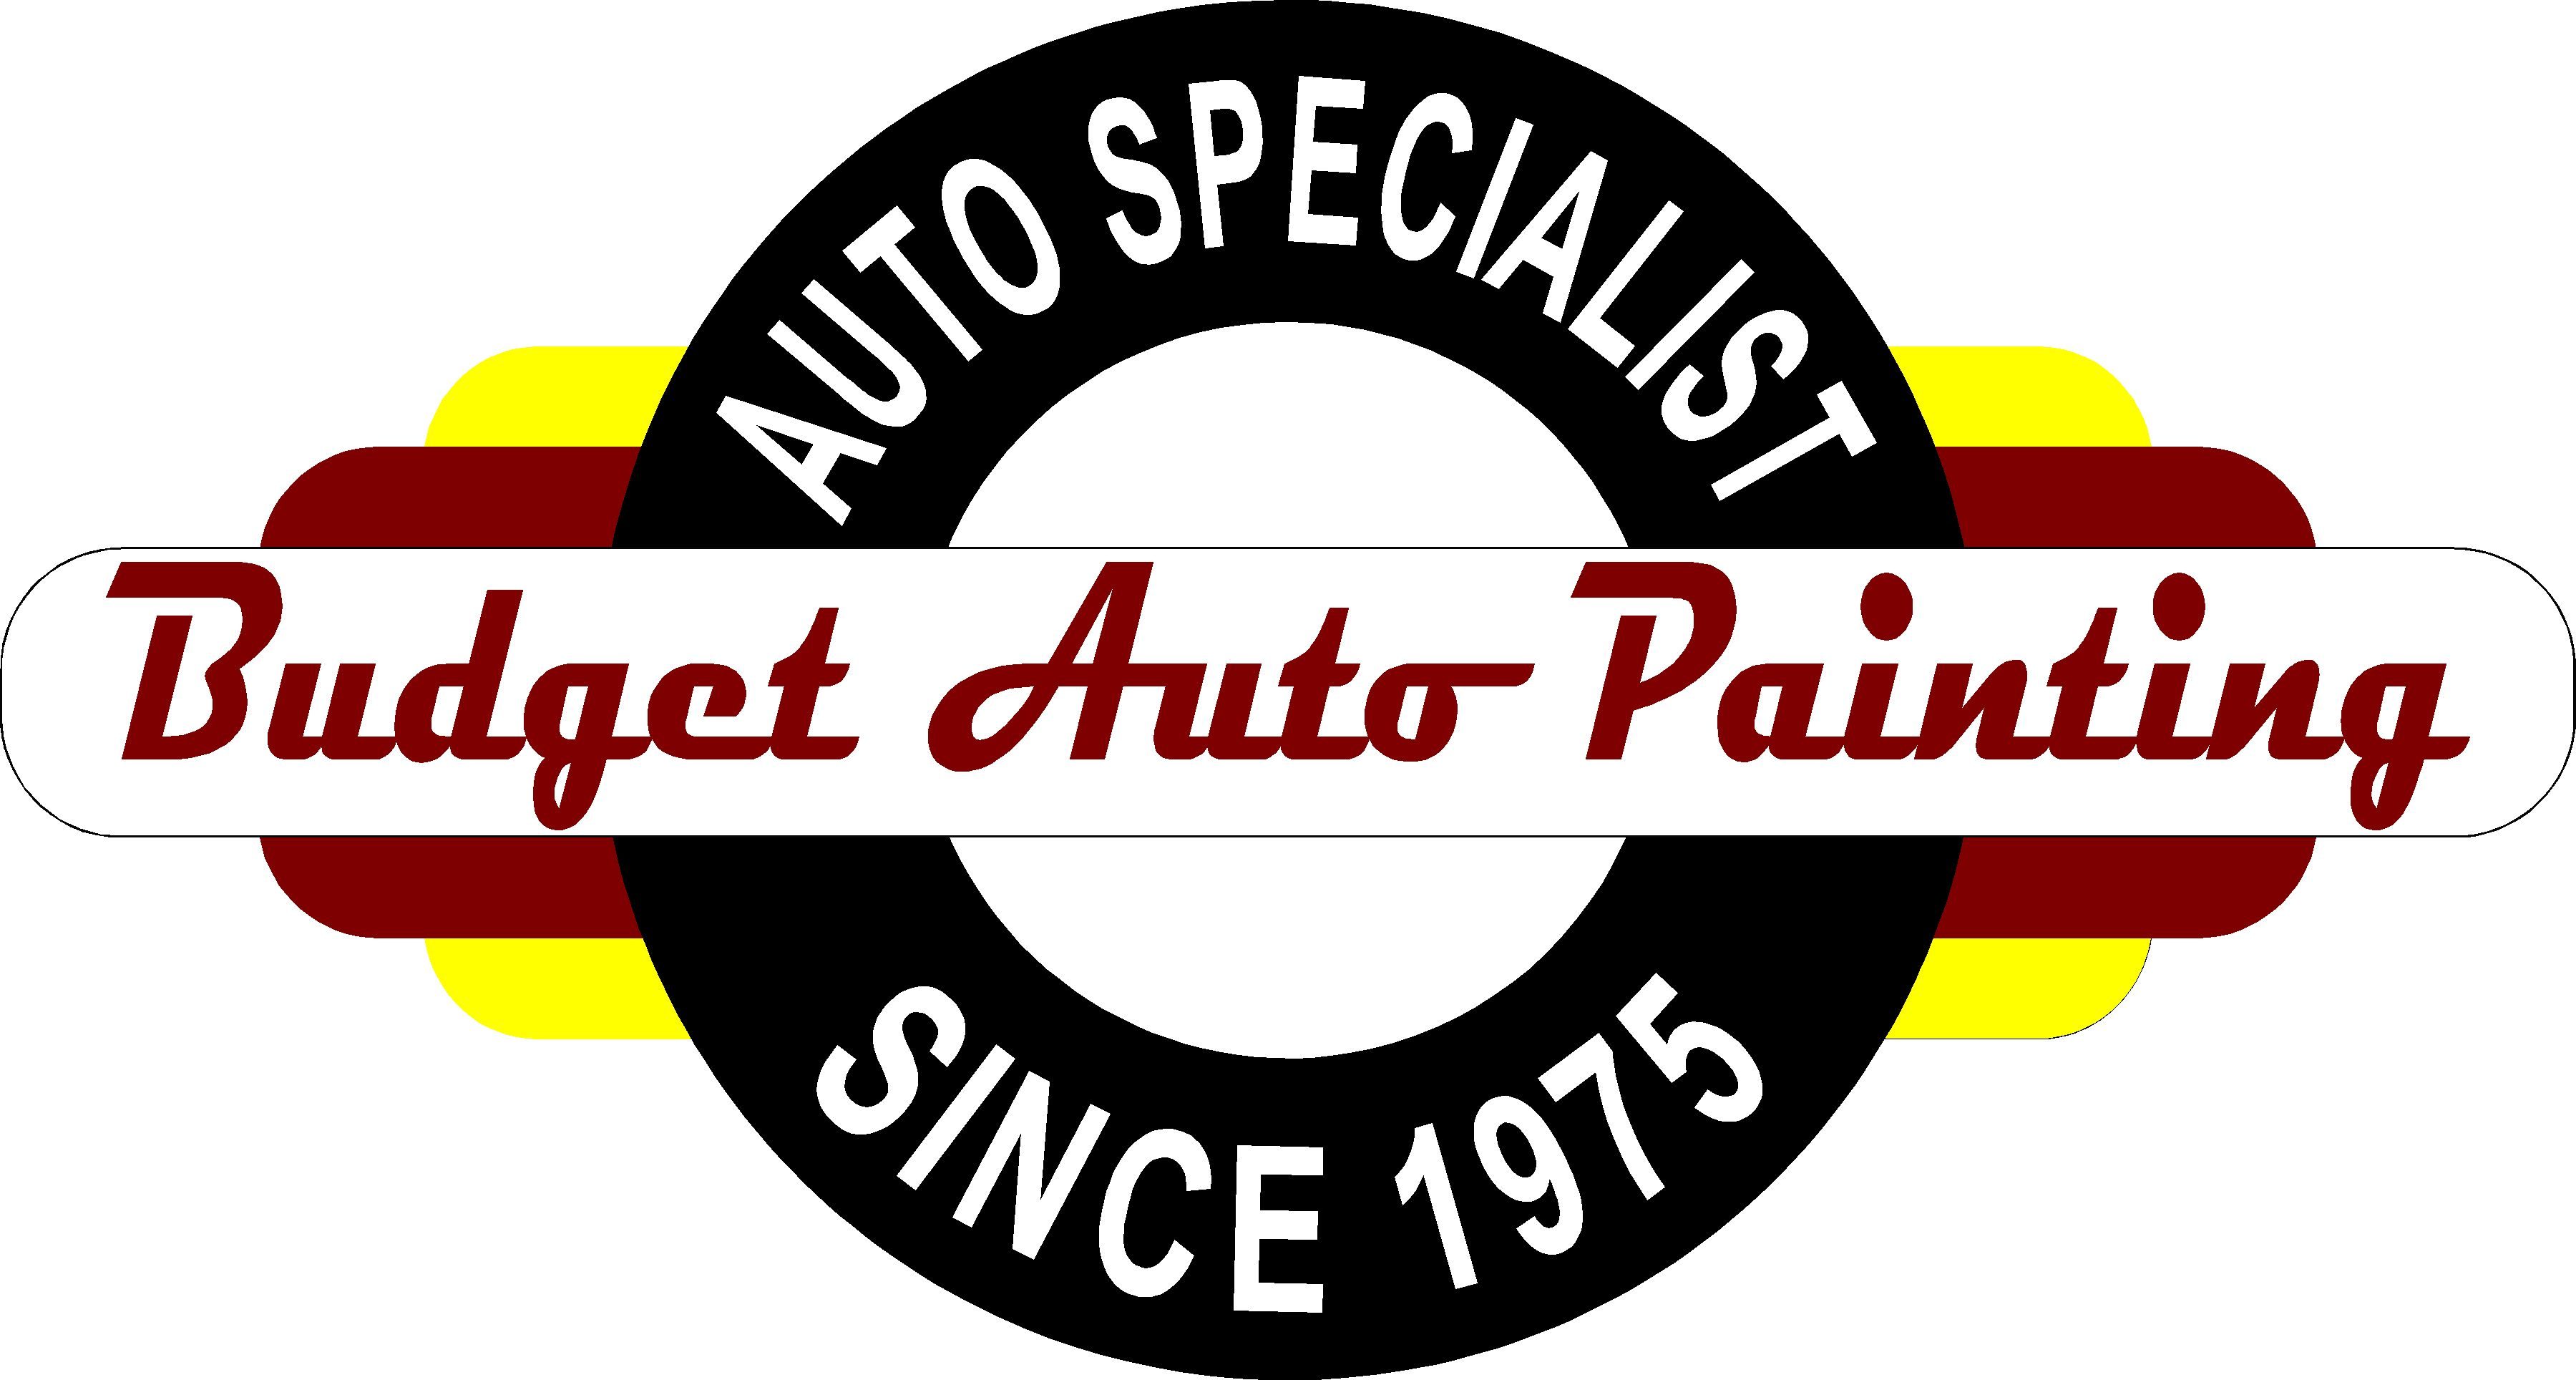 Budget Auto Painting, Inc. Photo